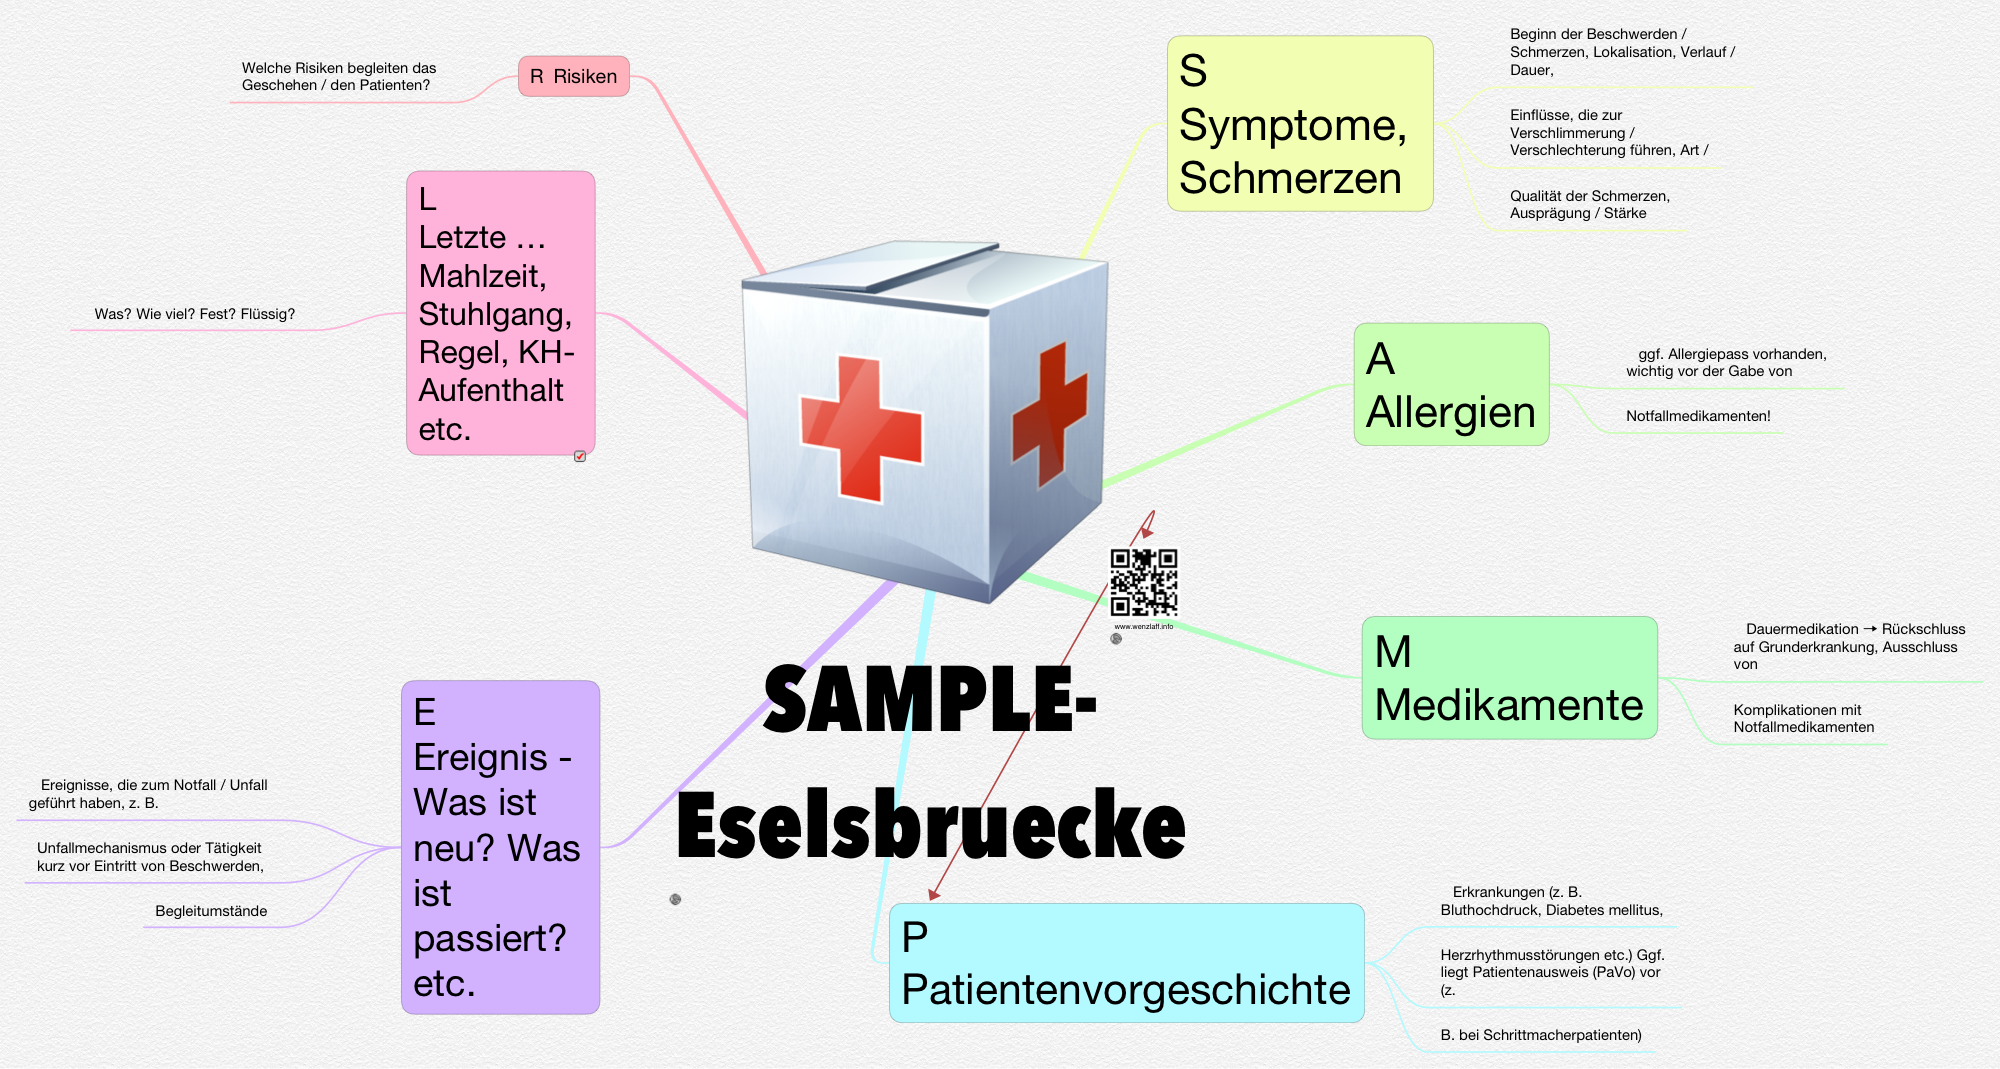 SAMPLE-Eselsbruecke